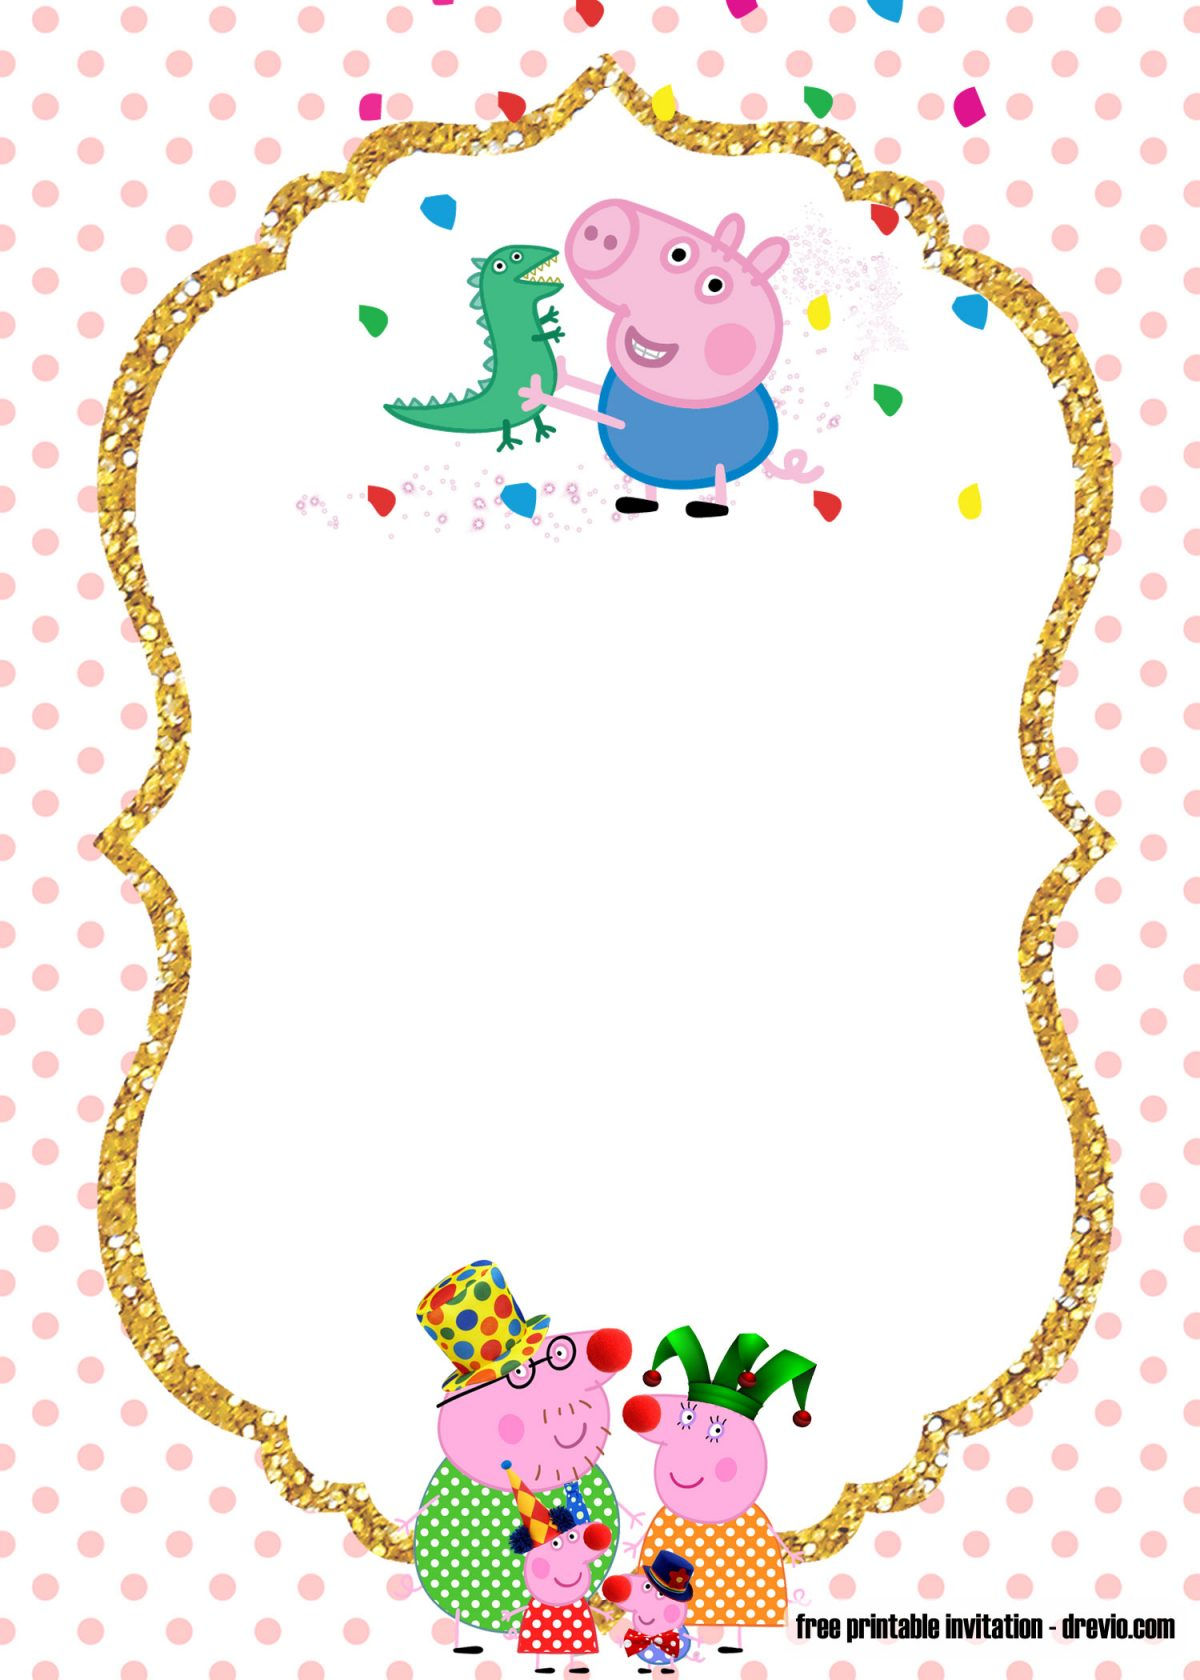 This is an image of Peppa Pig Character Free Printable Images for figura en foami de